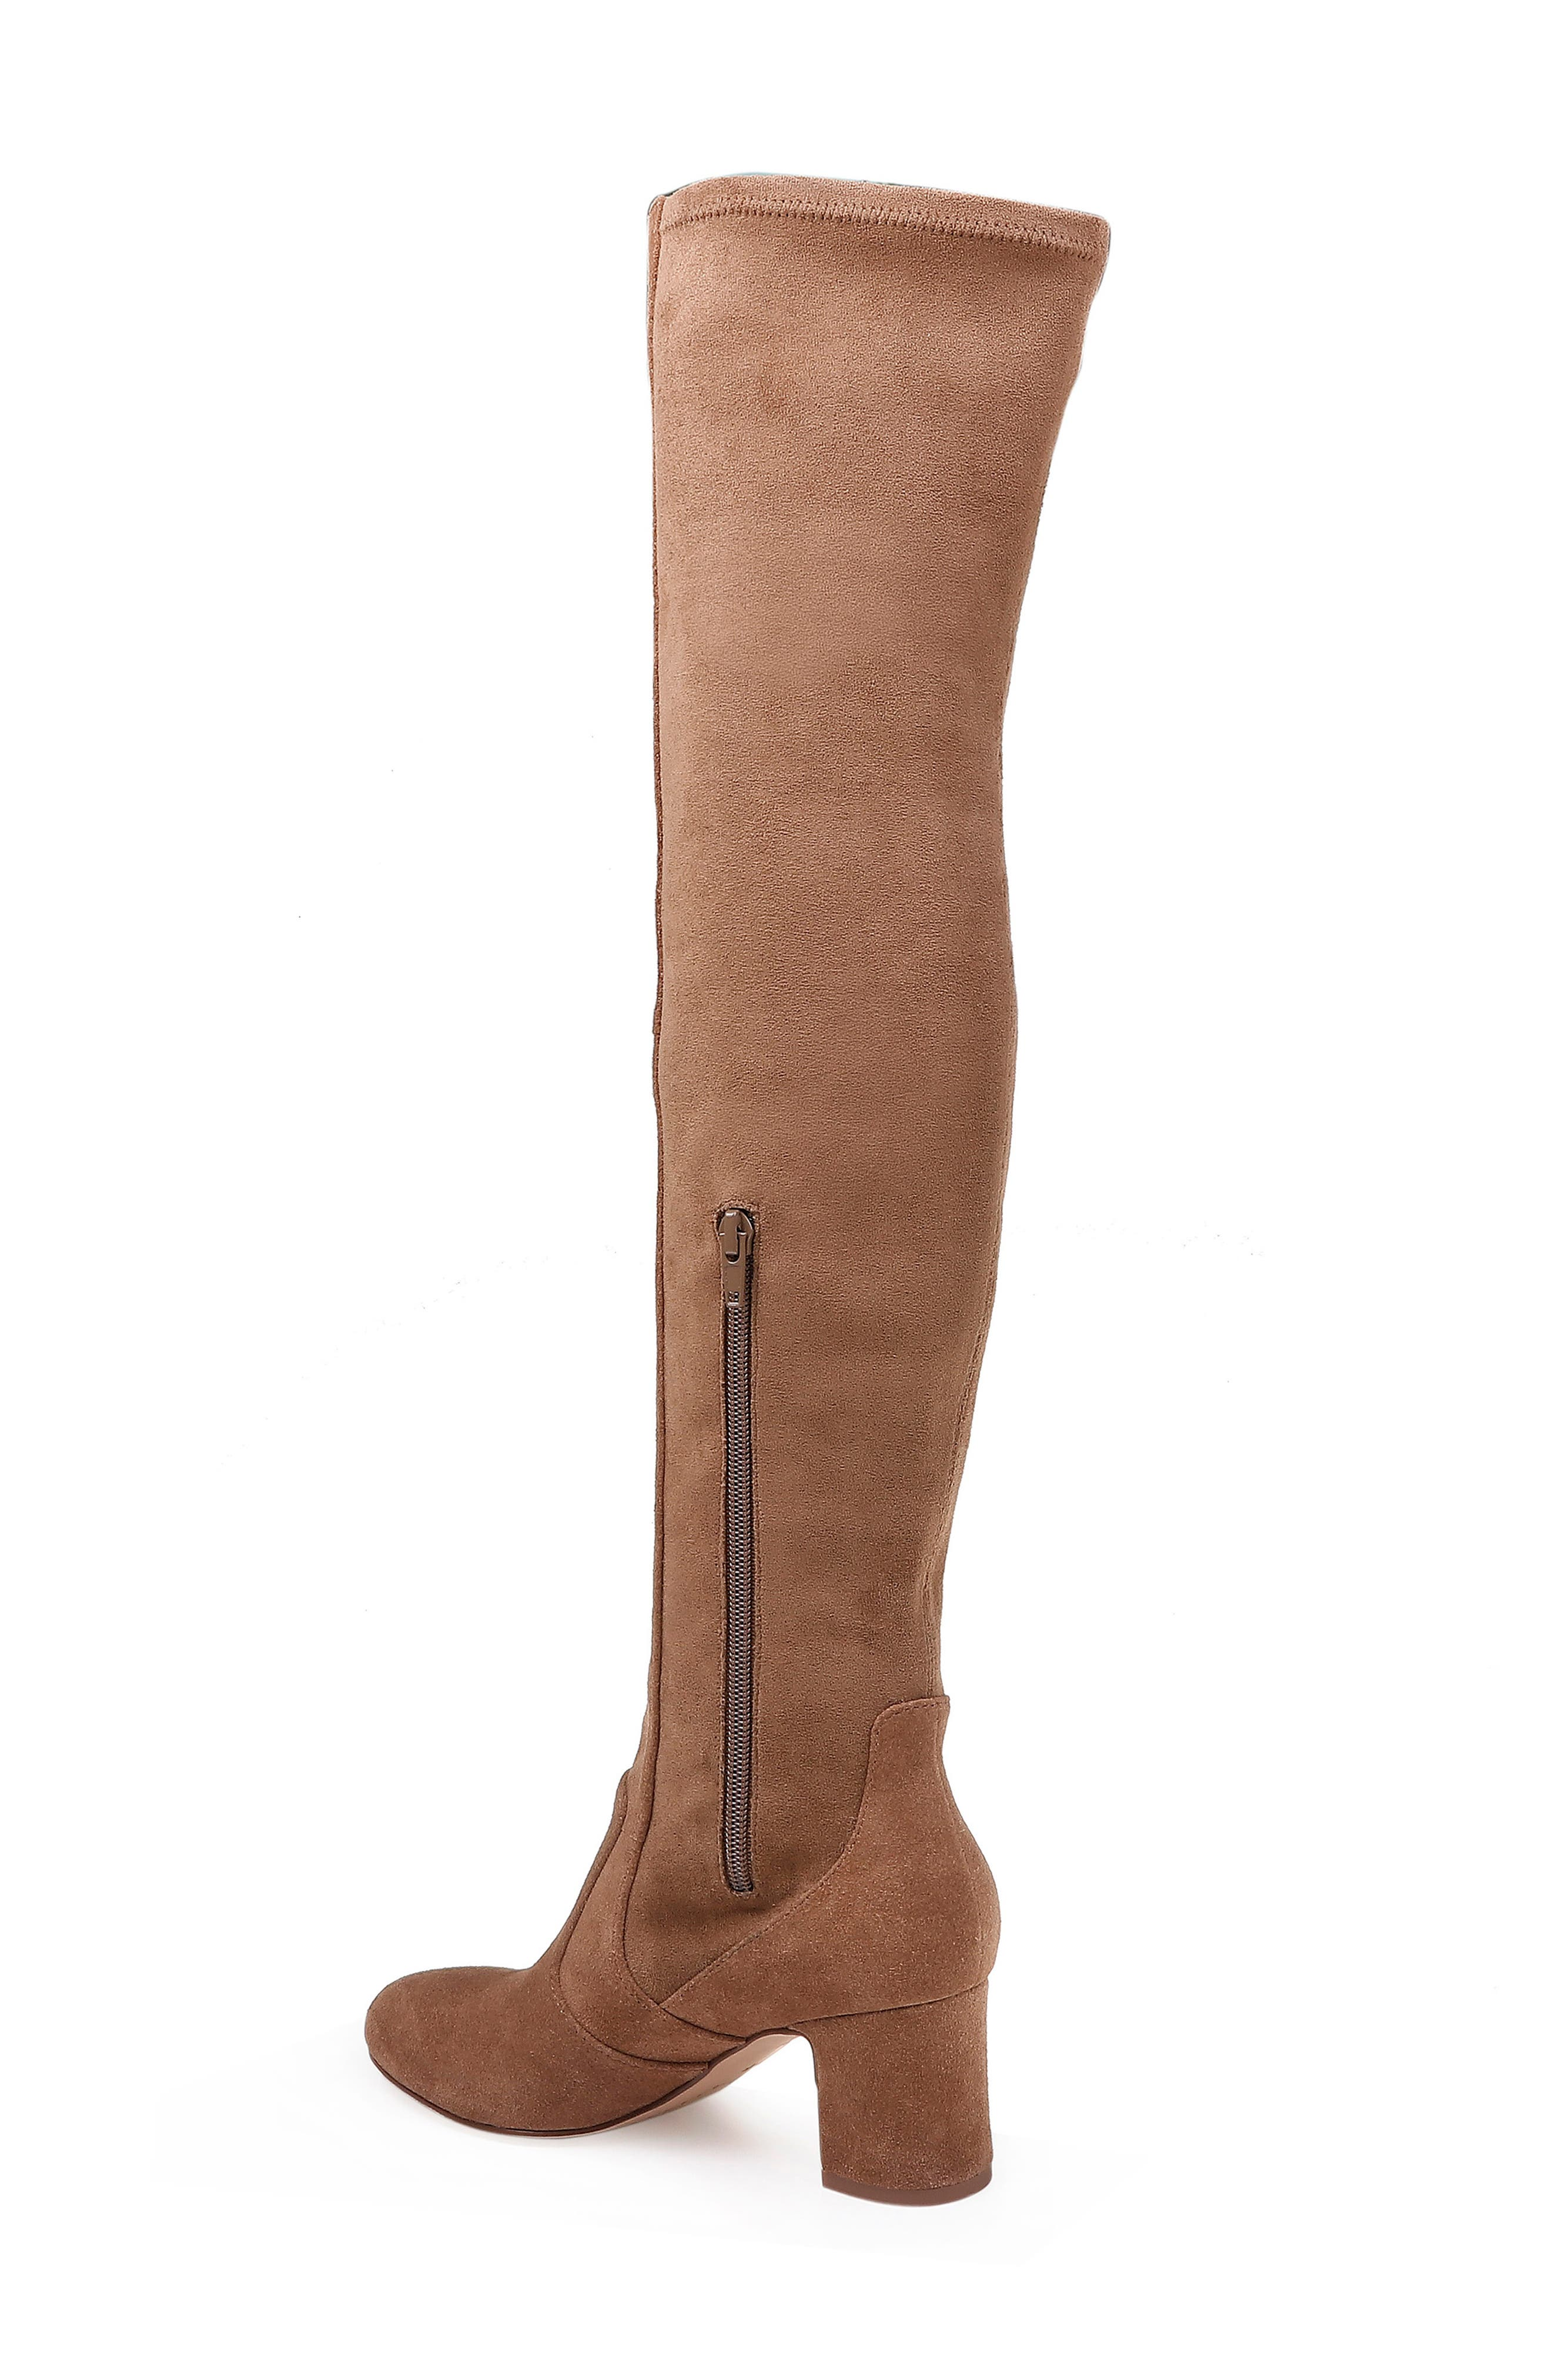 Over the Knee Stretch Back Boot,                             Alternate thumbnail 2, color,                             LIGHT BROWN SUEDE